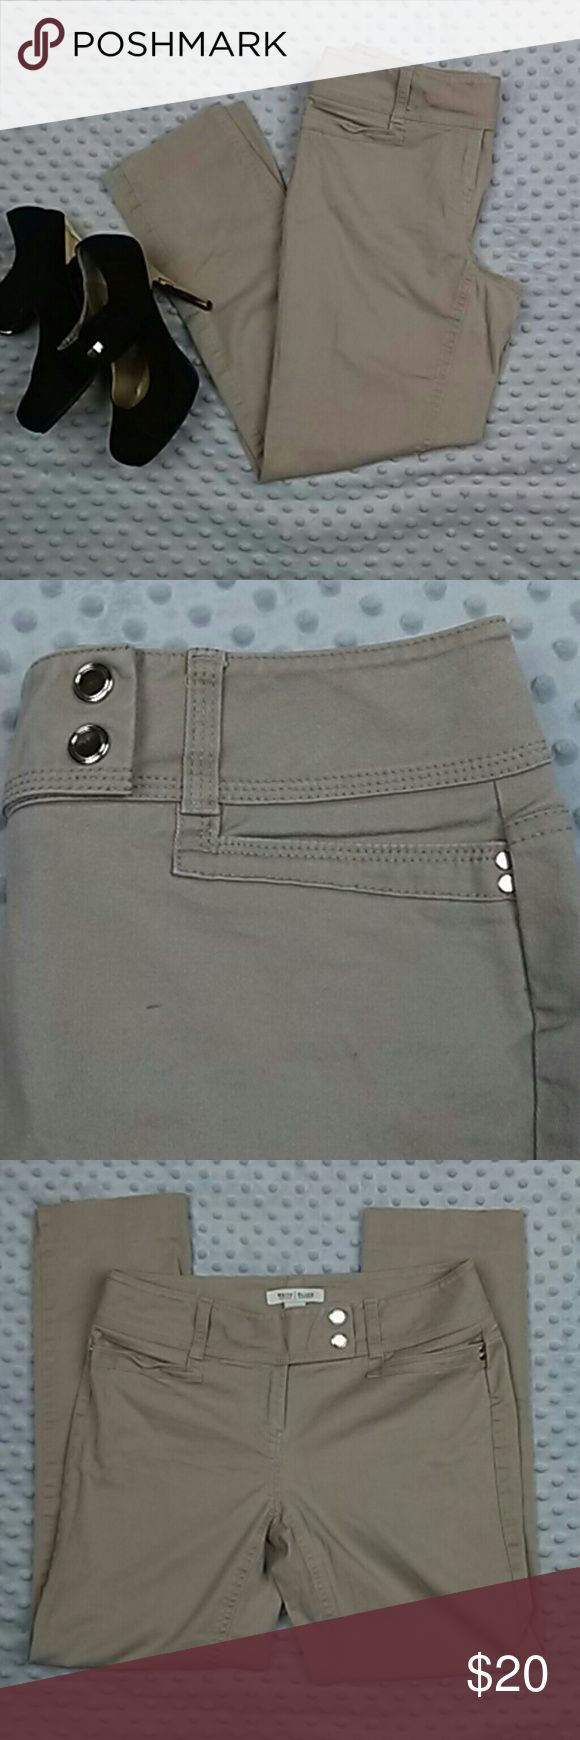 White house black market khaki capris size 2 White house black market khaki capris. Size 2. Snap closures. Color may vary. Great condition White House Black Market Jeans Ankle & Cropped